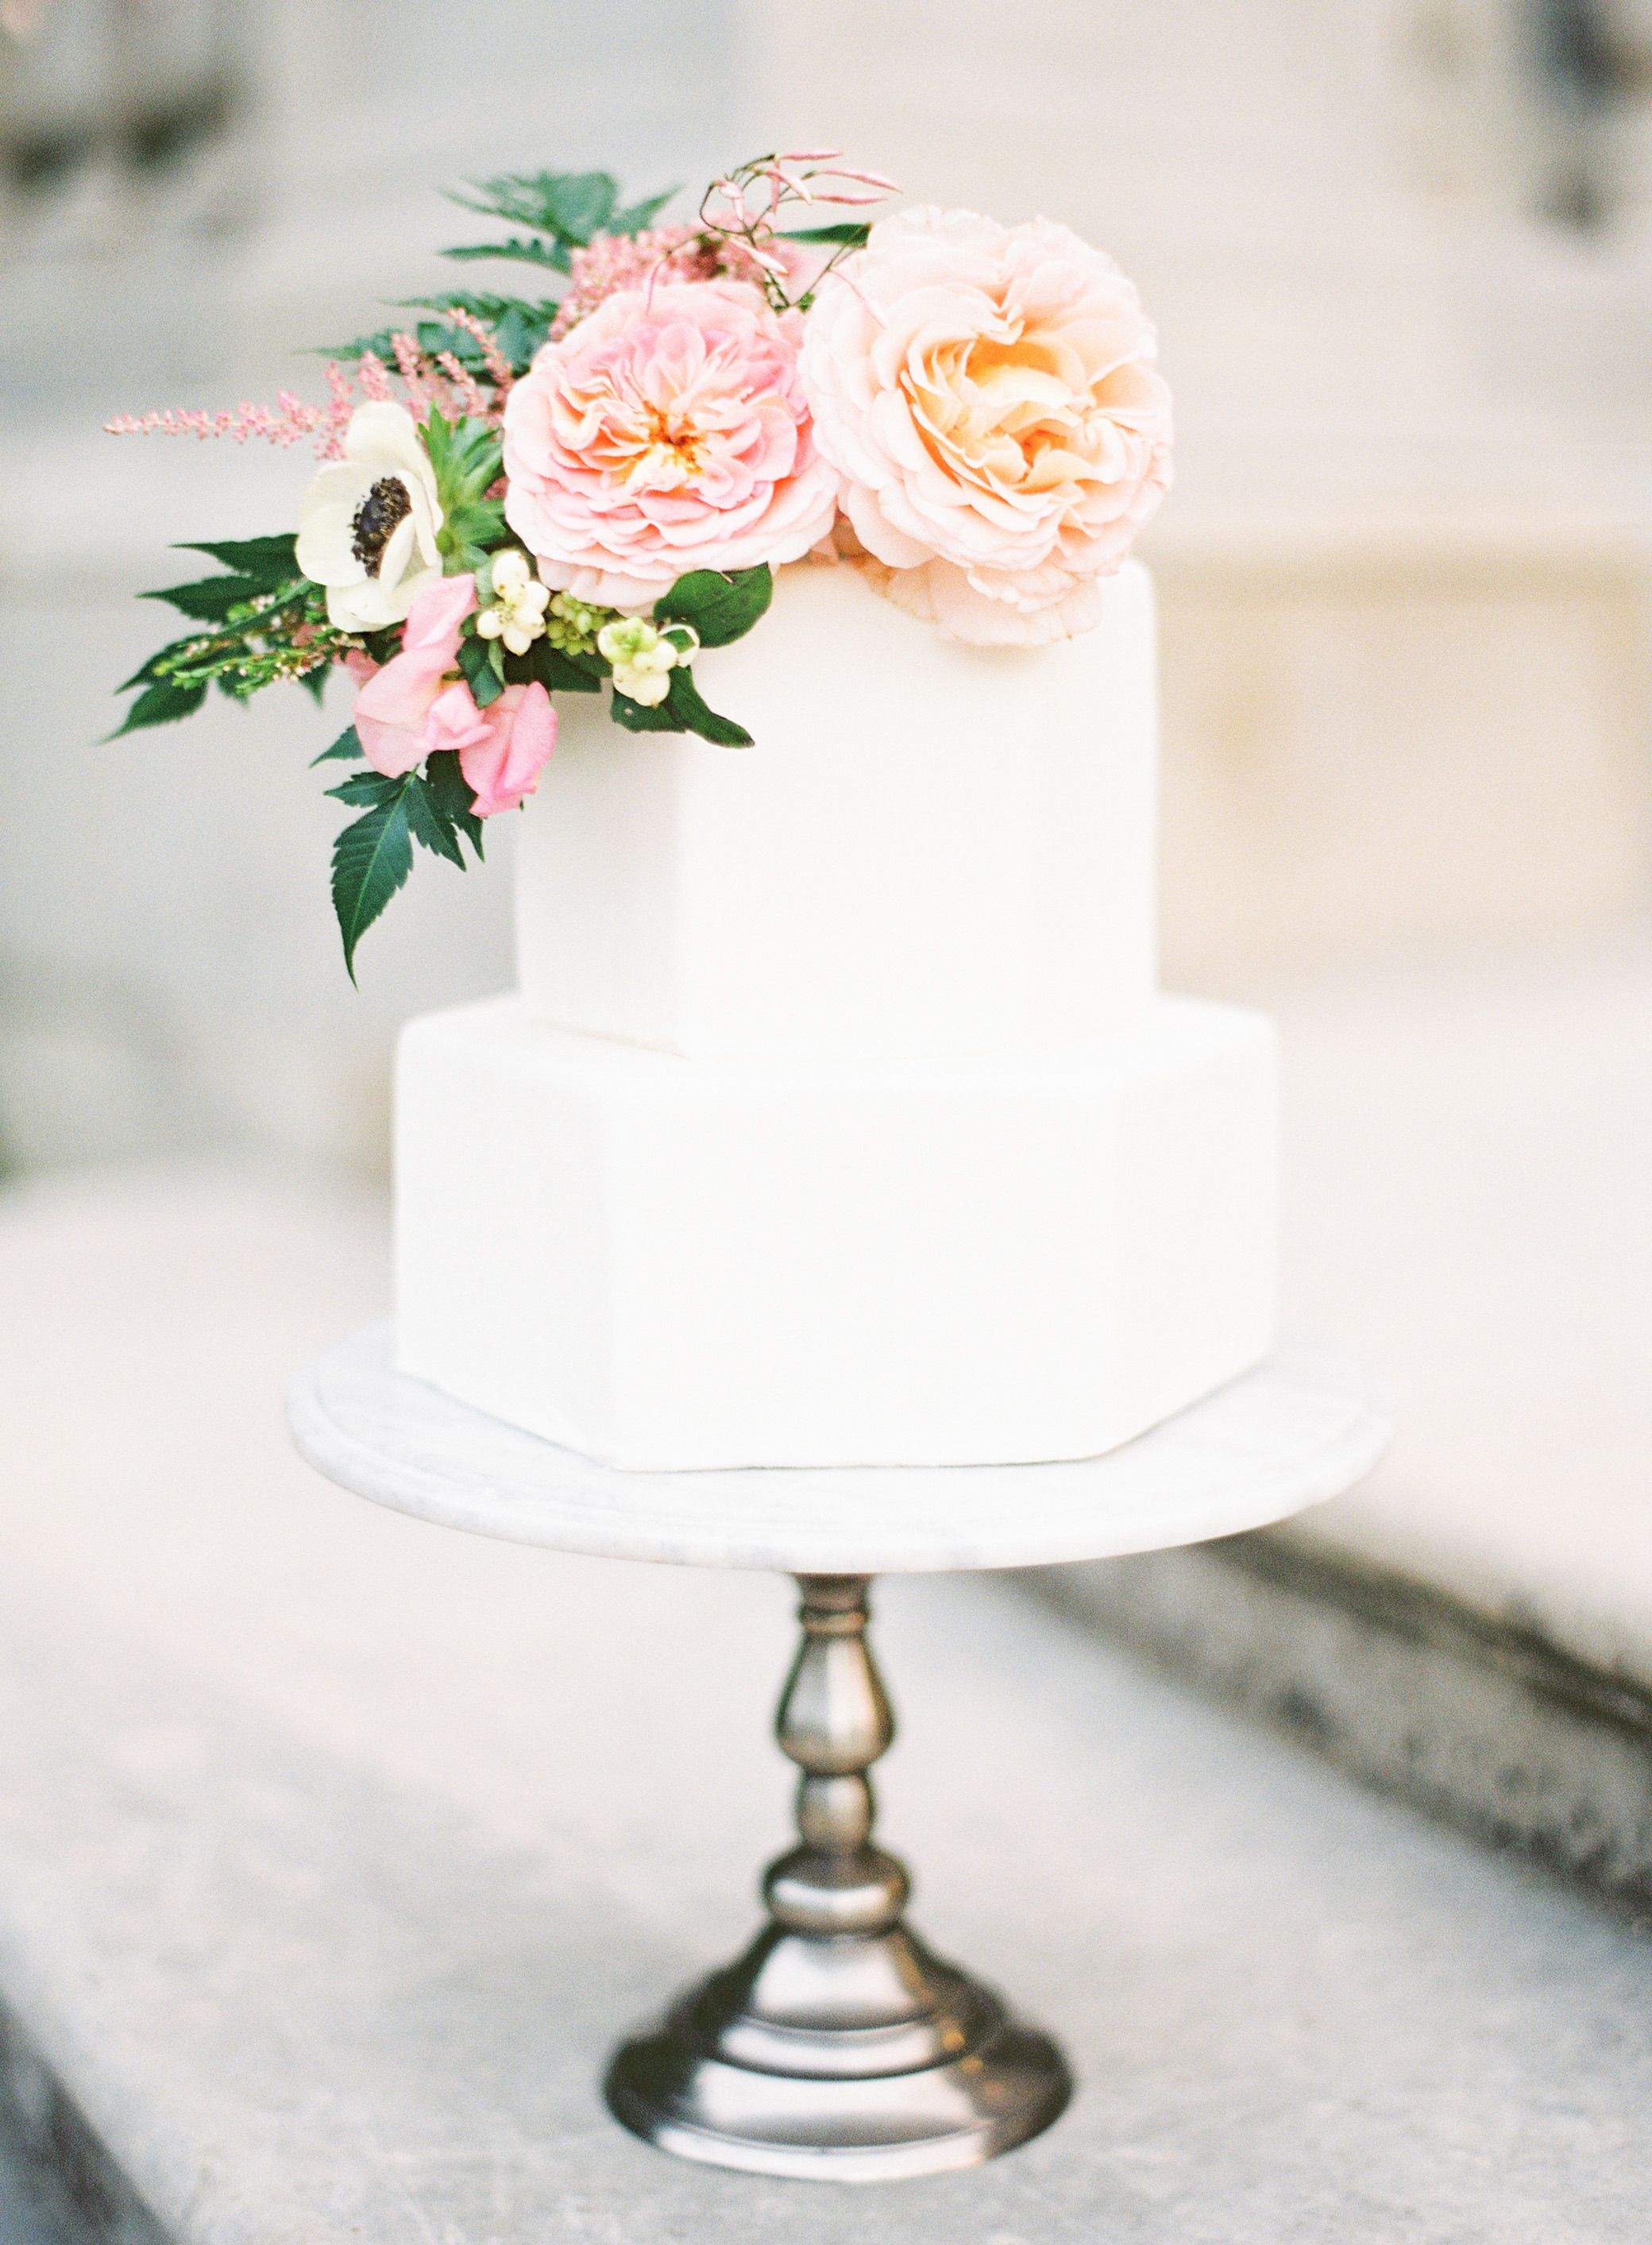 The best images about wedding cakes on pinterest marriage